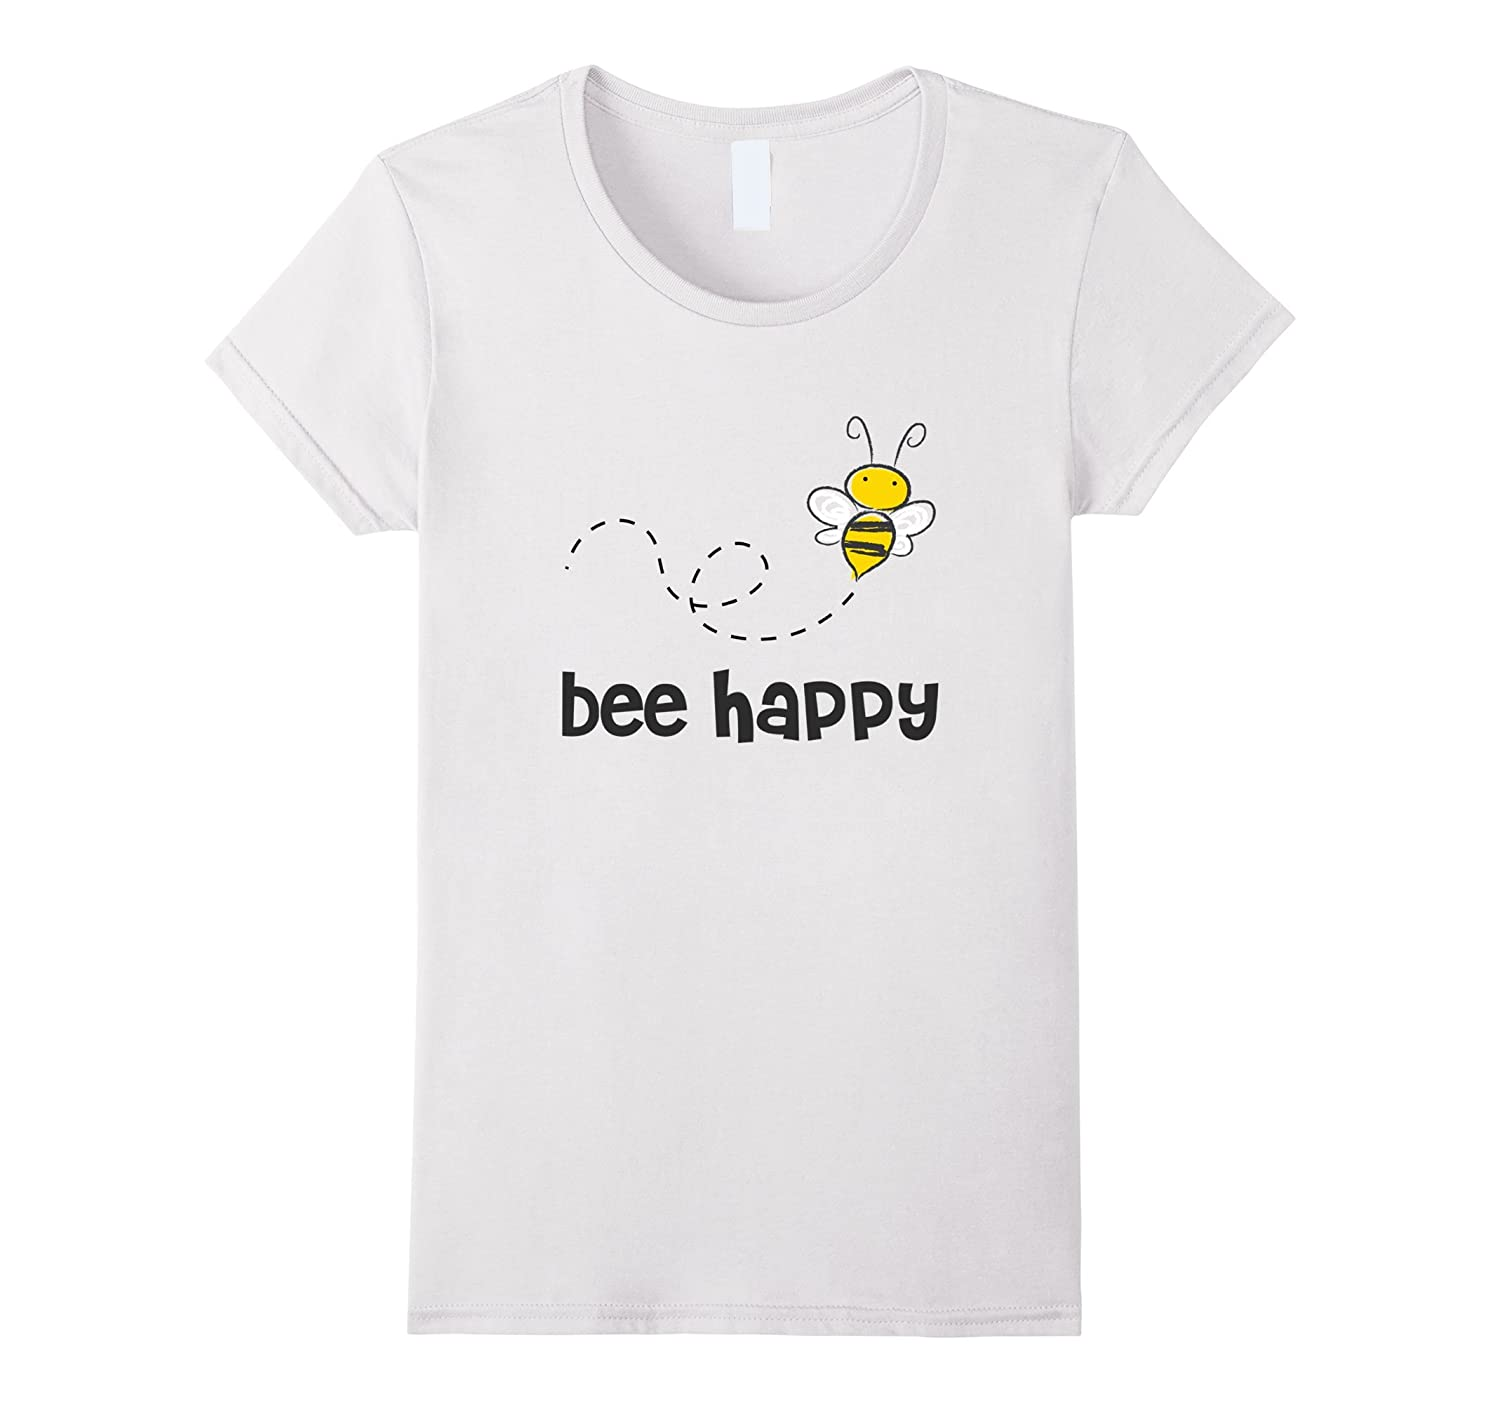 Bee Happy Shirt for Beekeepers and Lovers of Honey Bees